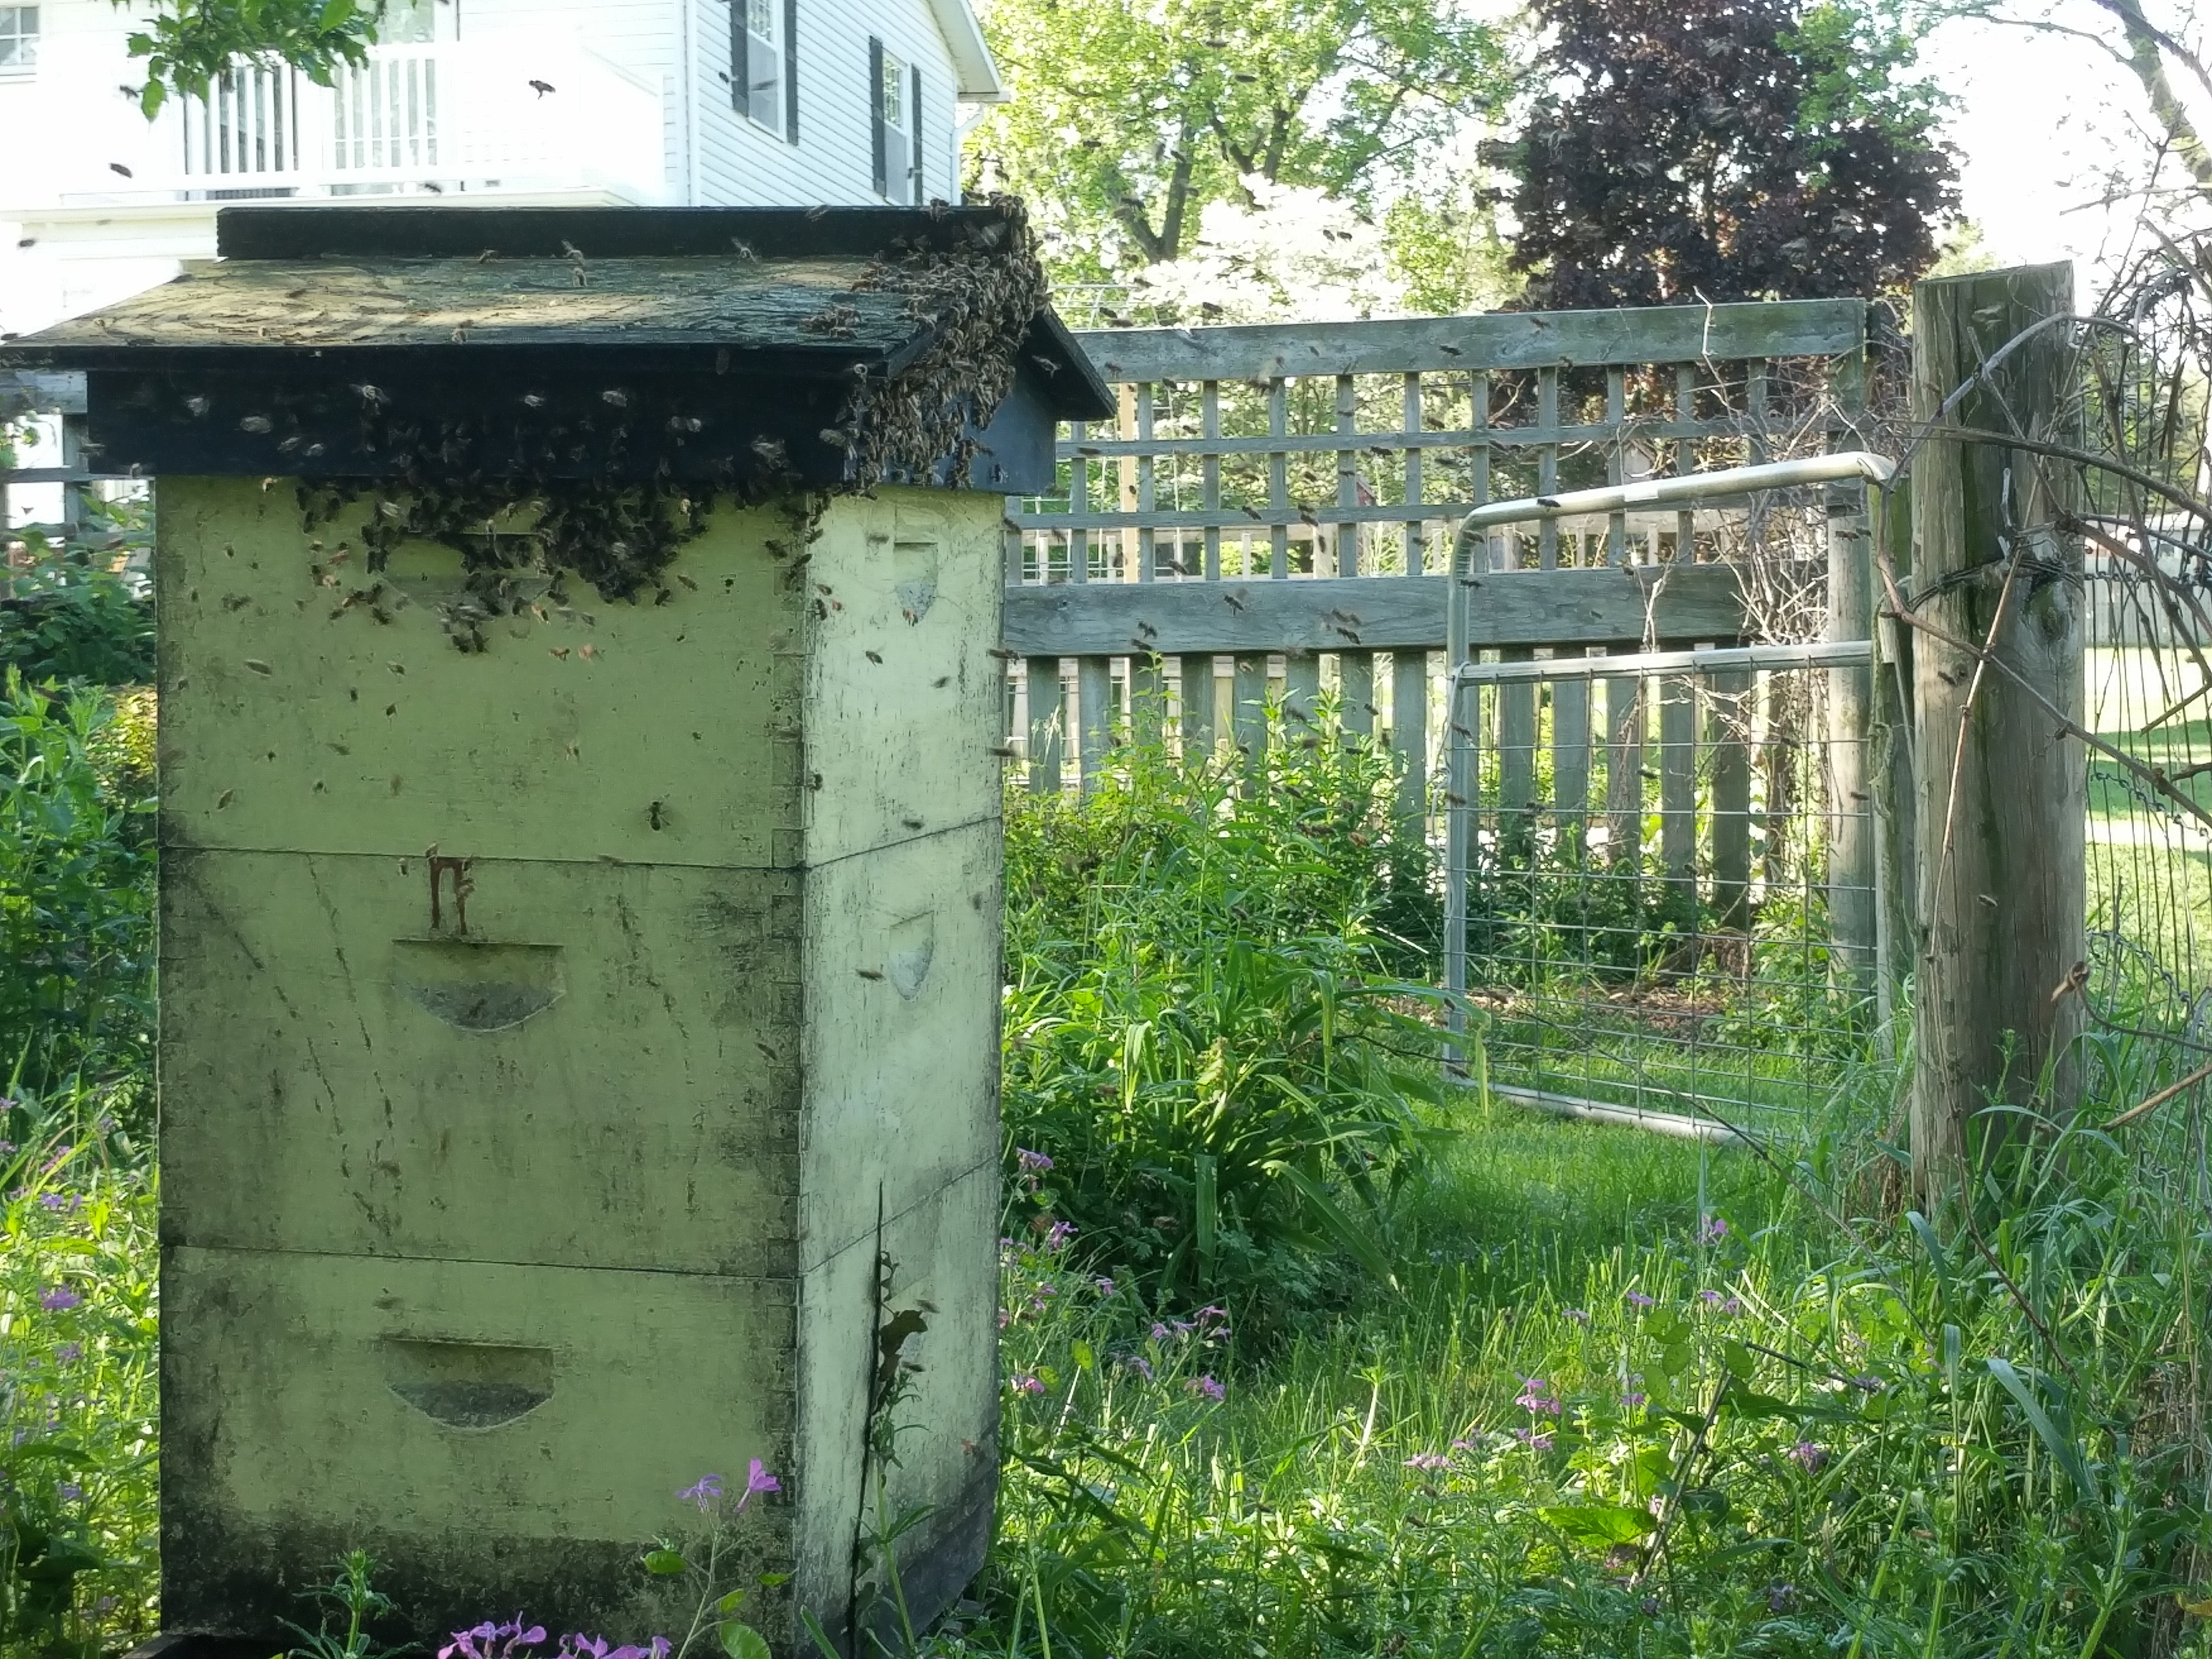 A honeybee swarm congregating on an old beehive